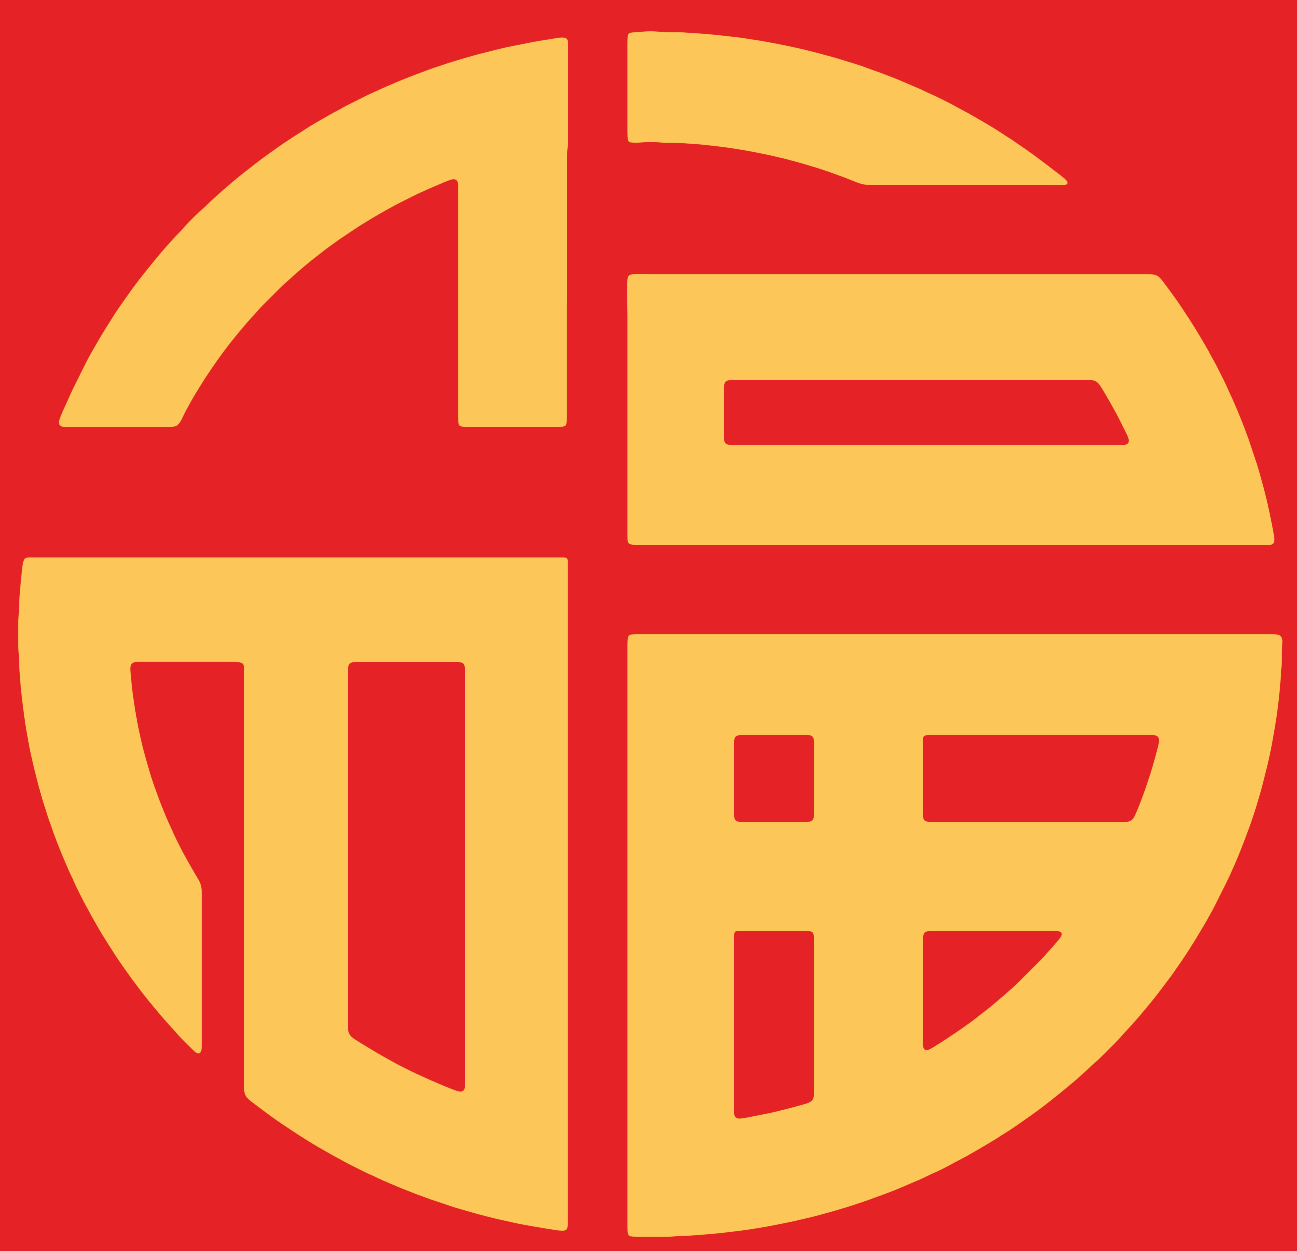 fortune-red-gold-logo